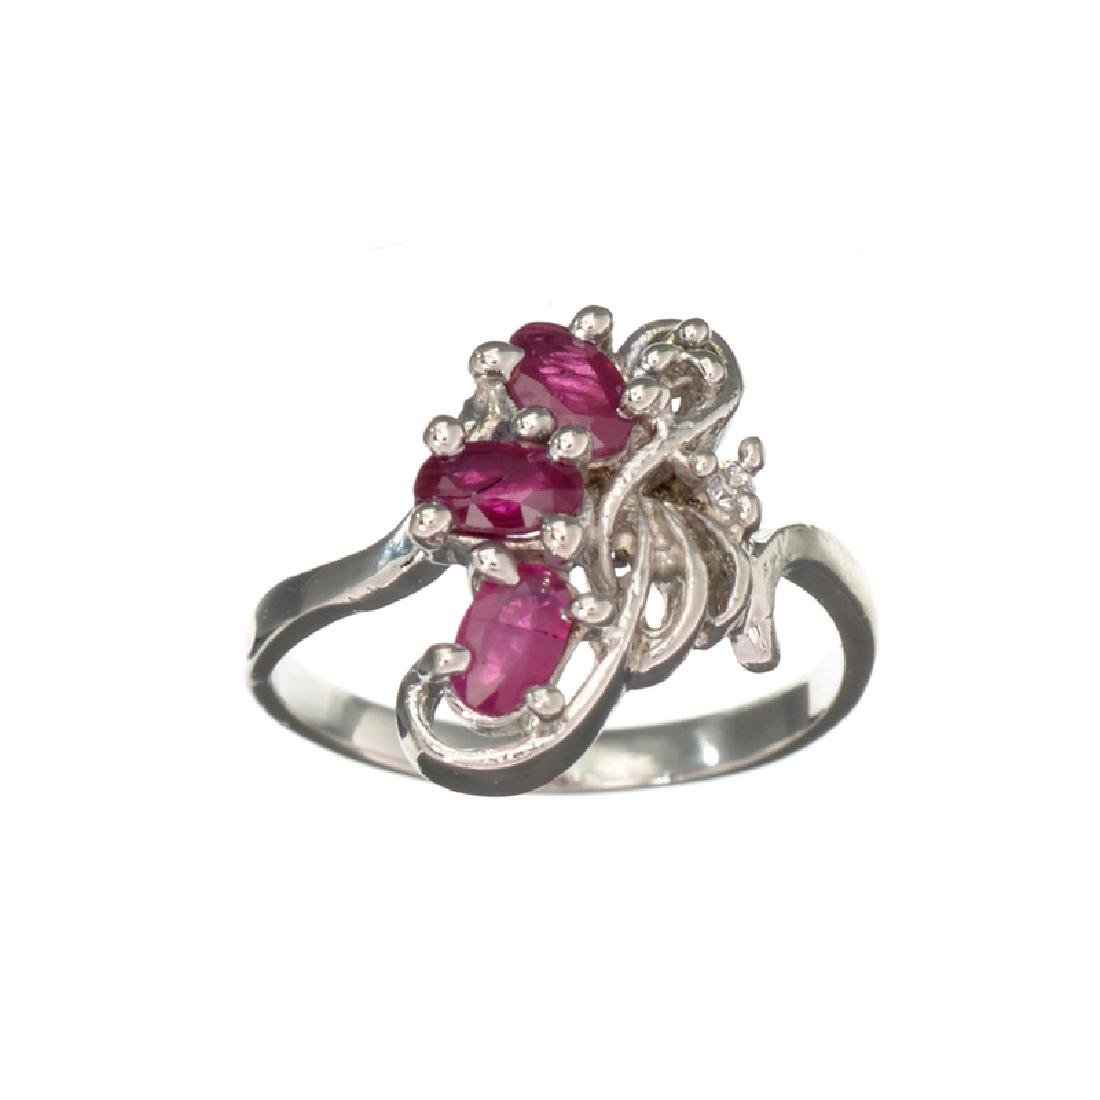 APP: 0.9k Fine Jewelry 0.75CT Ruby And Topaz Platinum